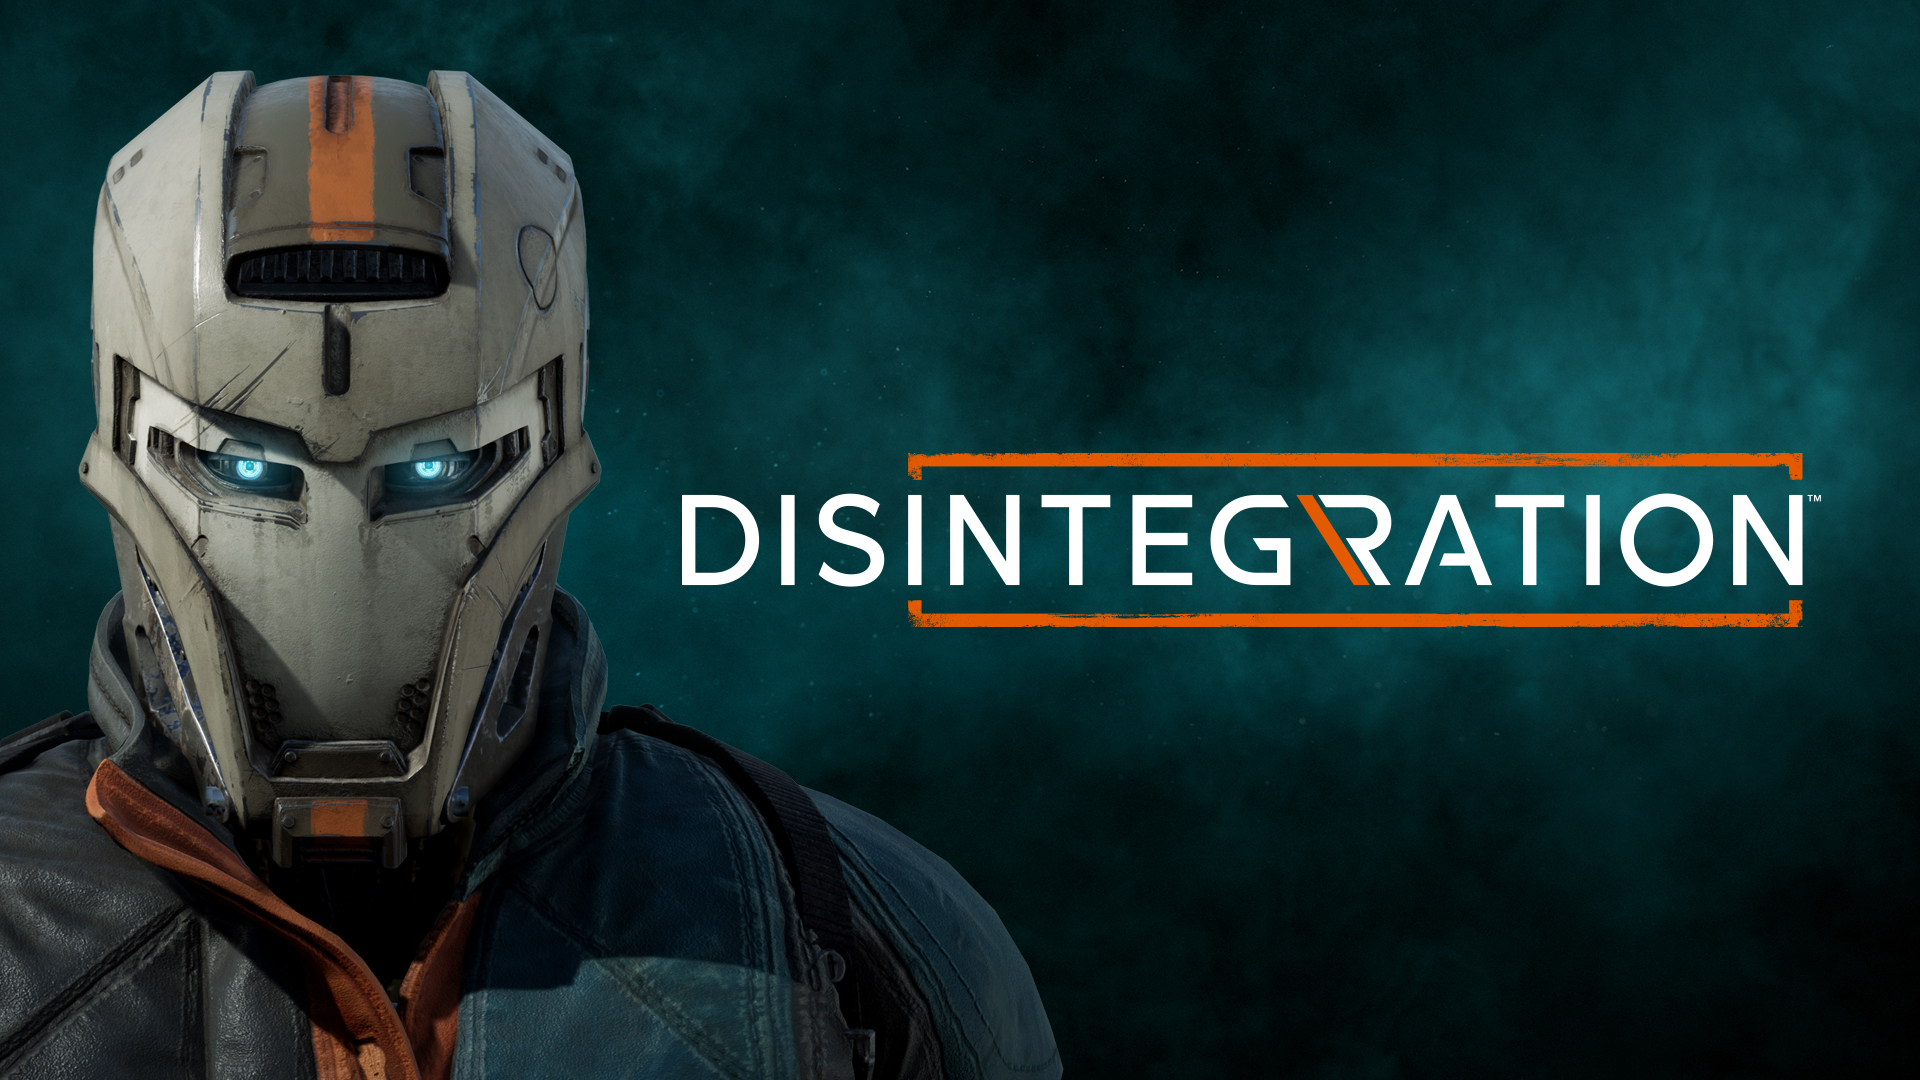 2020 Xbox One Games.Disintegration Launching In 2020 For Playstation 4 Xbox One